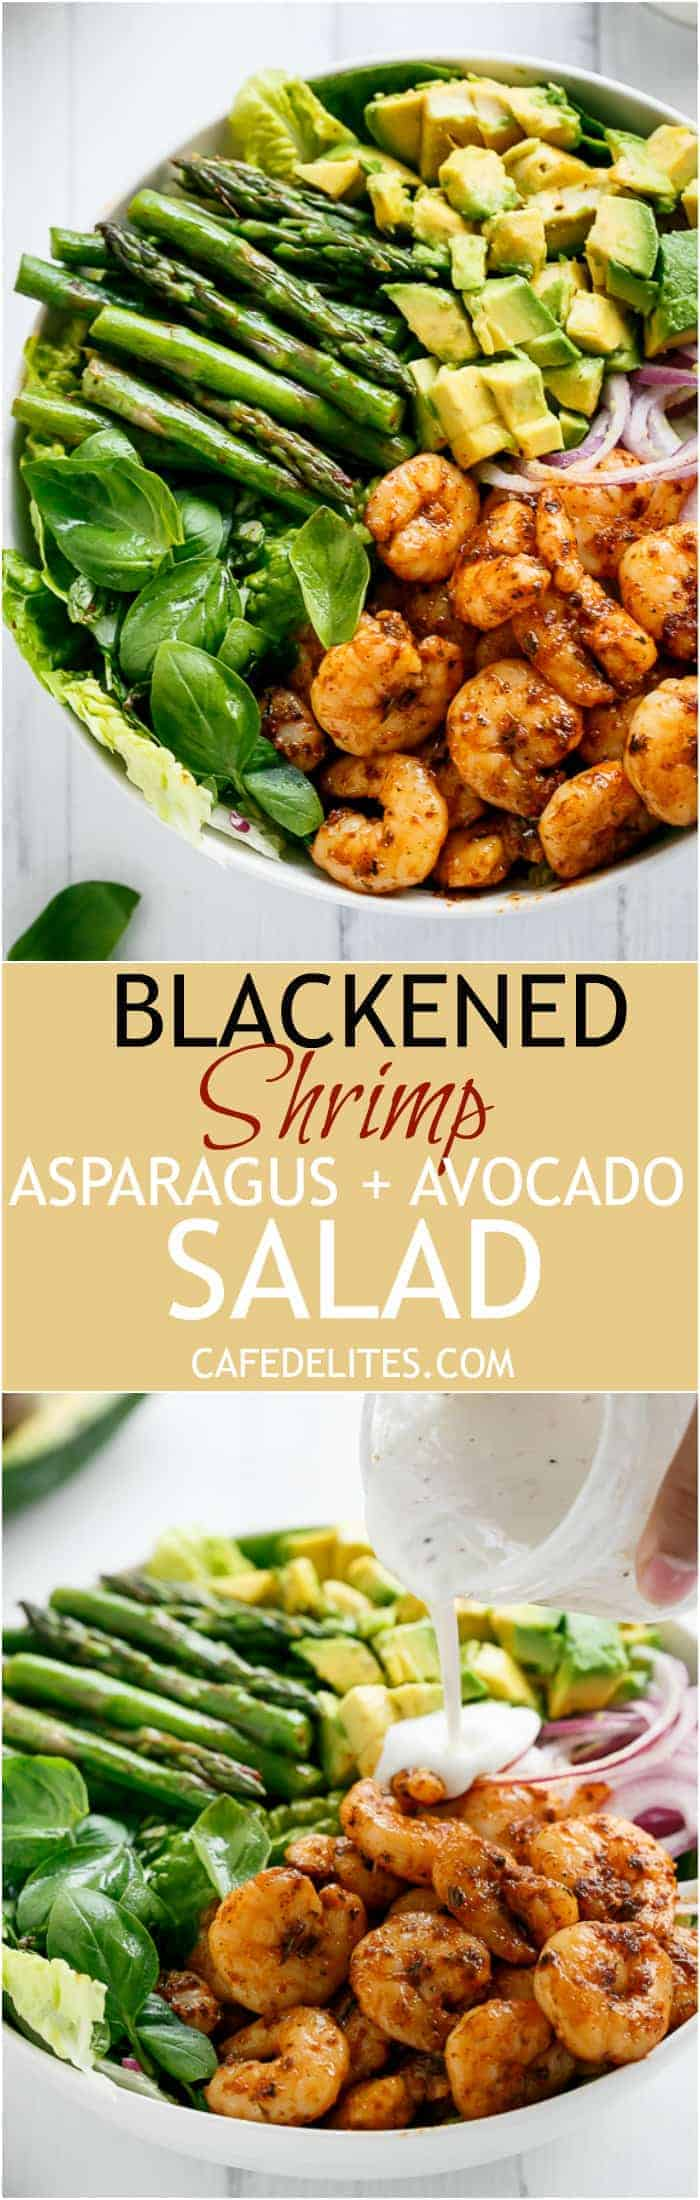 Blackened Shrimp, Asparagus and Avocado Salad with Lemon Pepper Yogurt Dressing | https://cafedelites.com